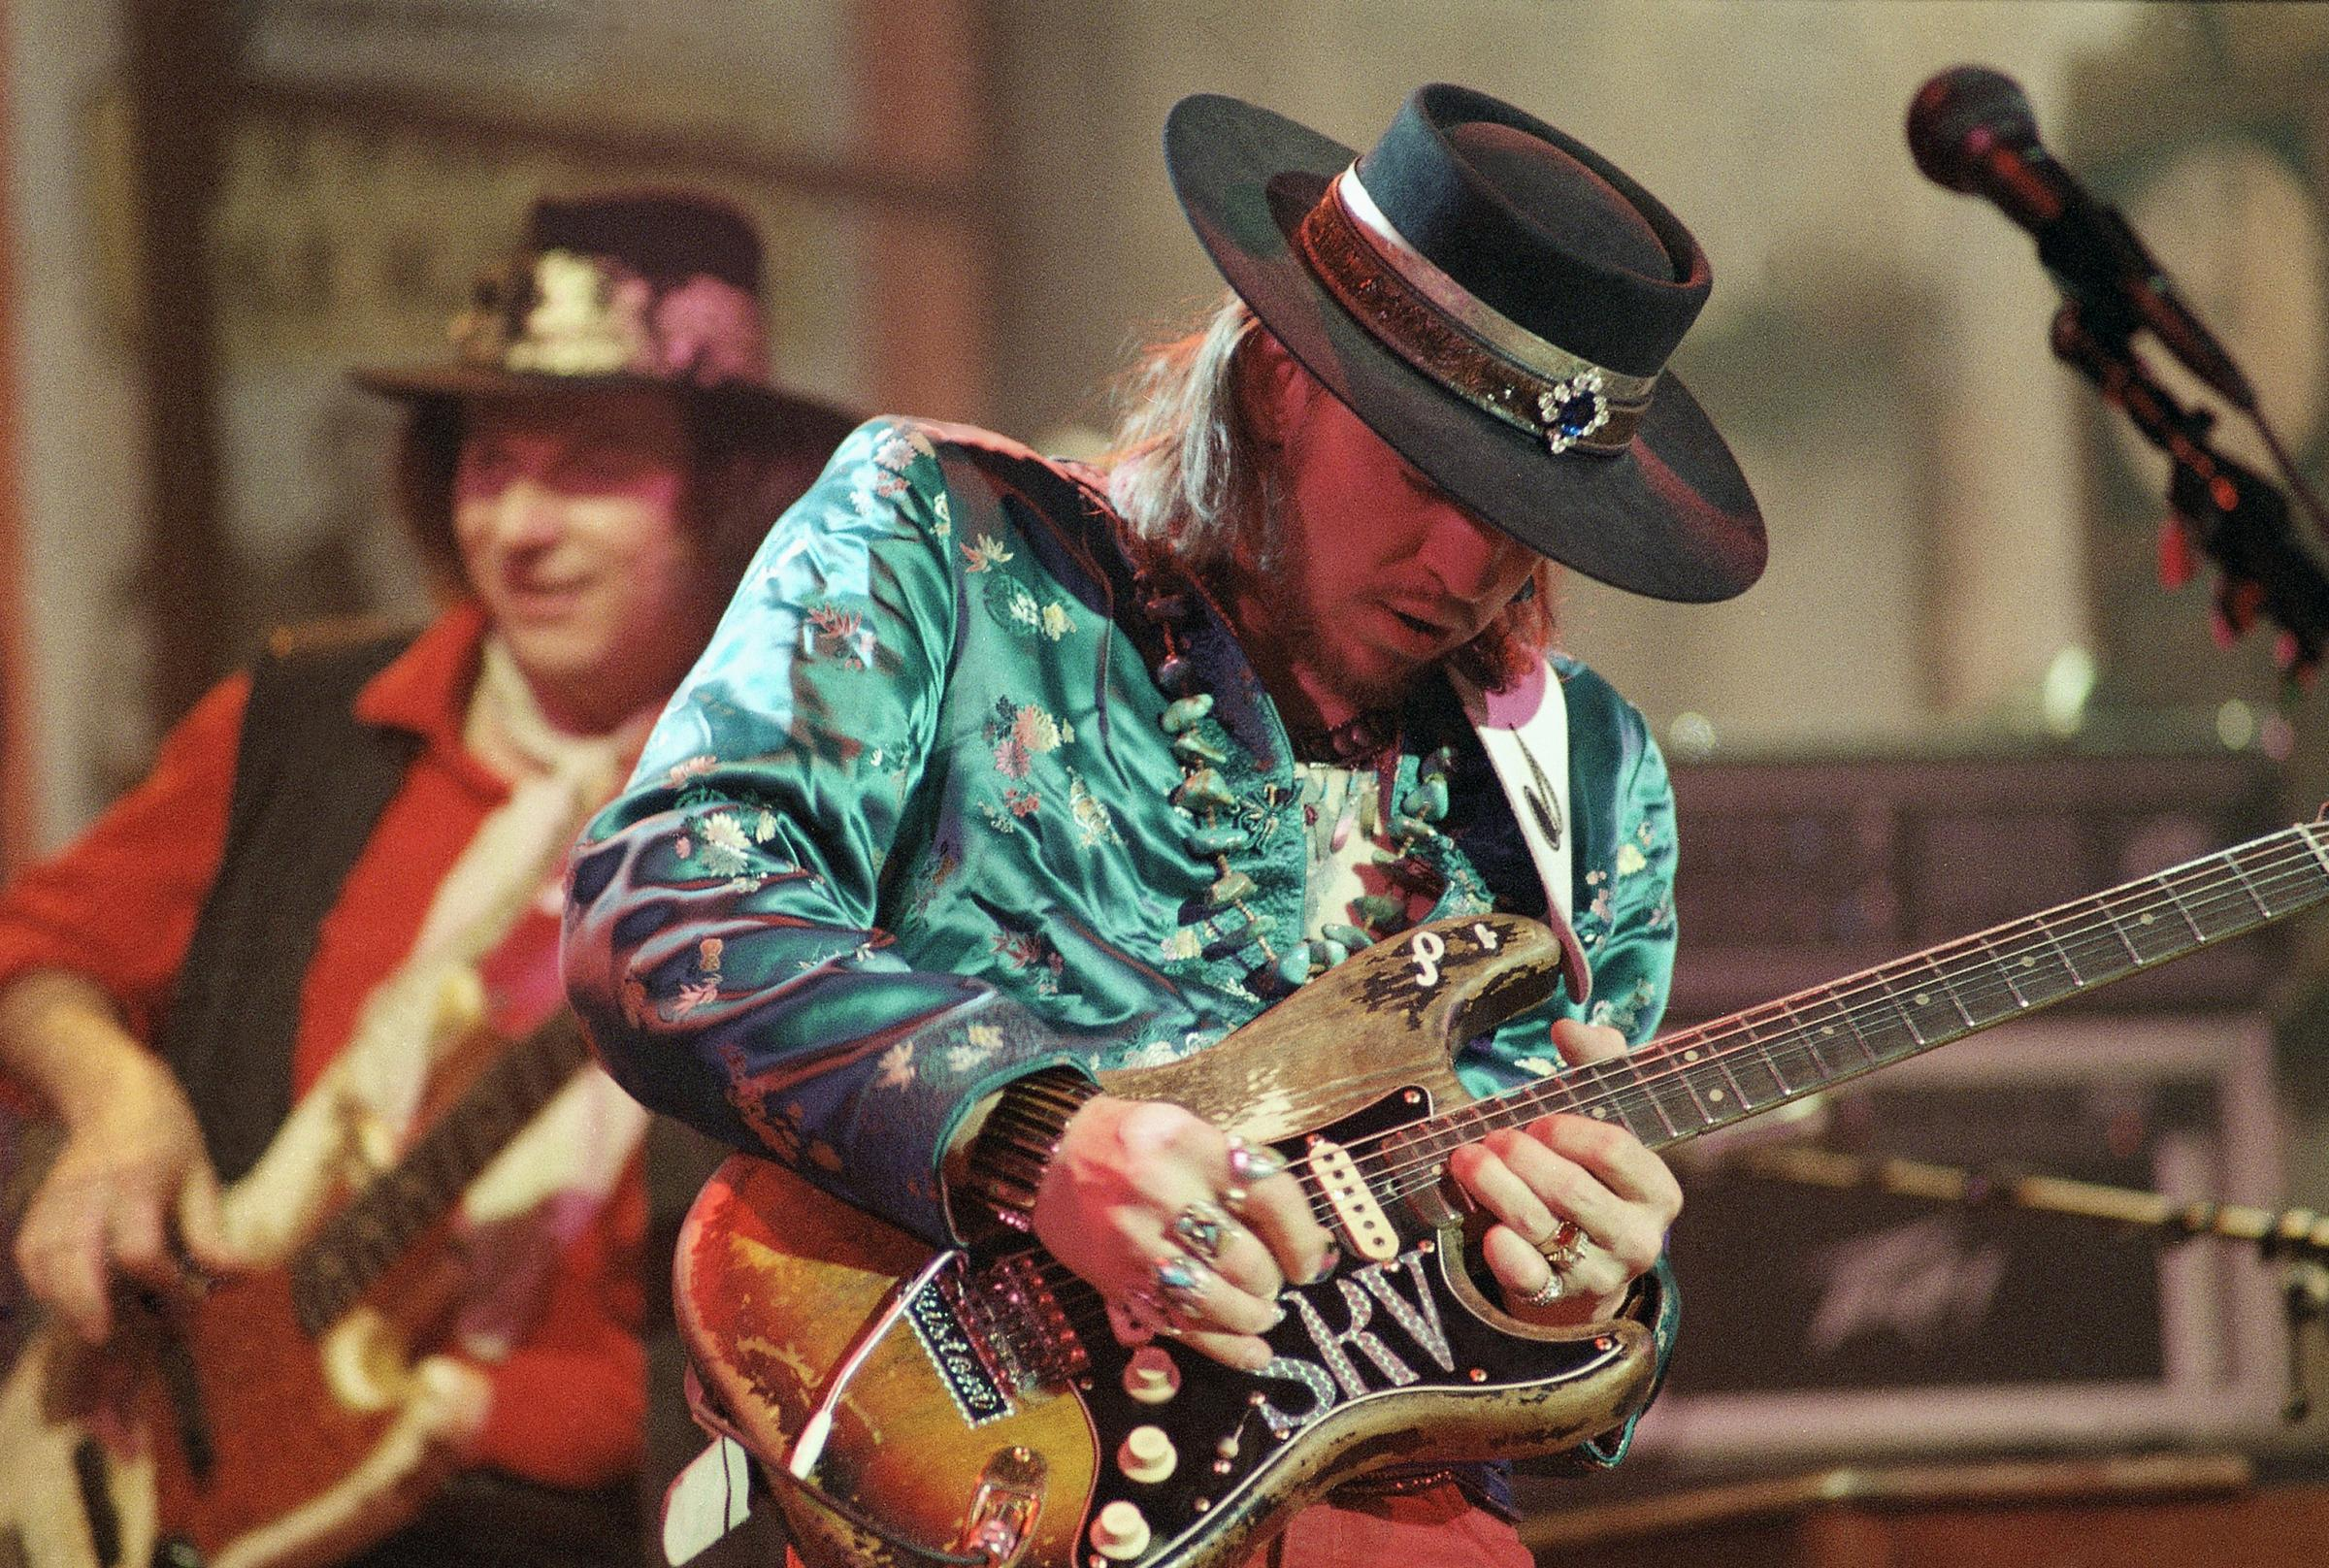 Guitarist Stevie Ray Vaughan Rehearses With His Band Double Trouble For A Performance On Saturday Night Live In 1986